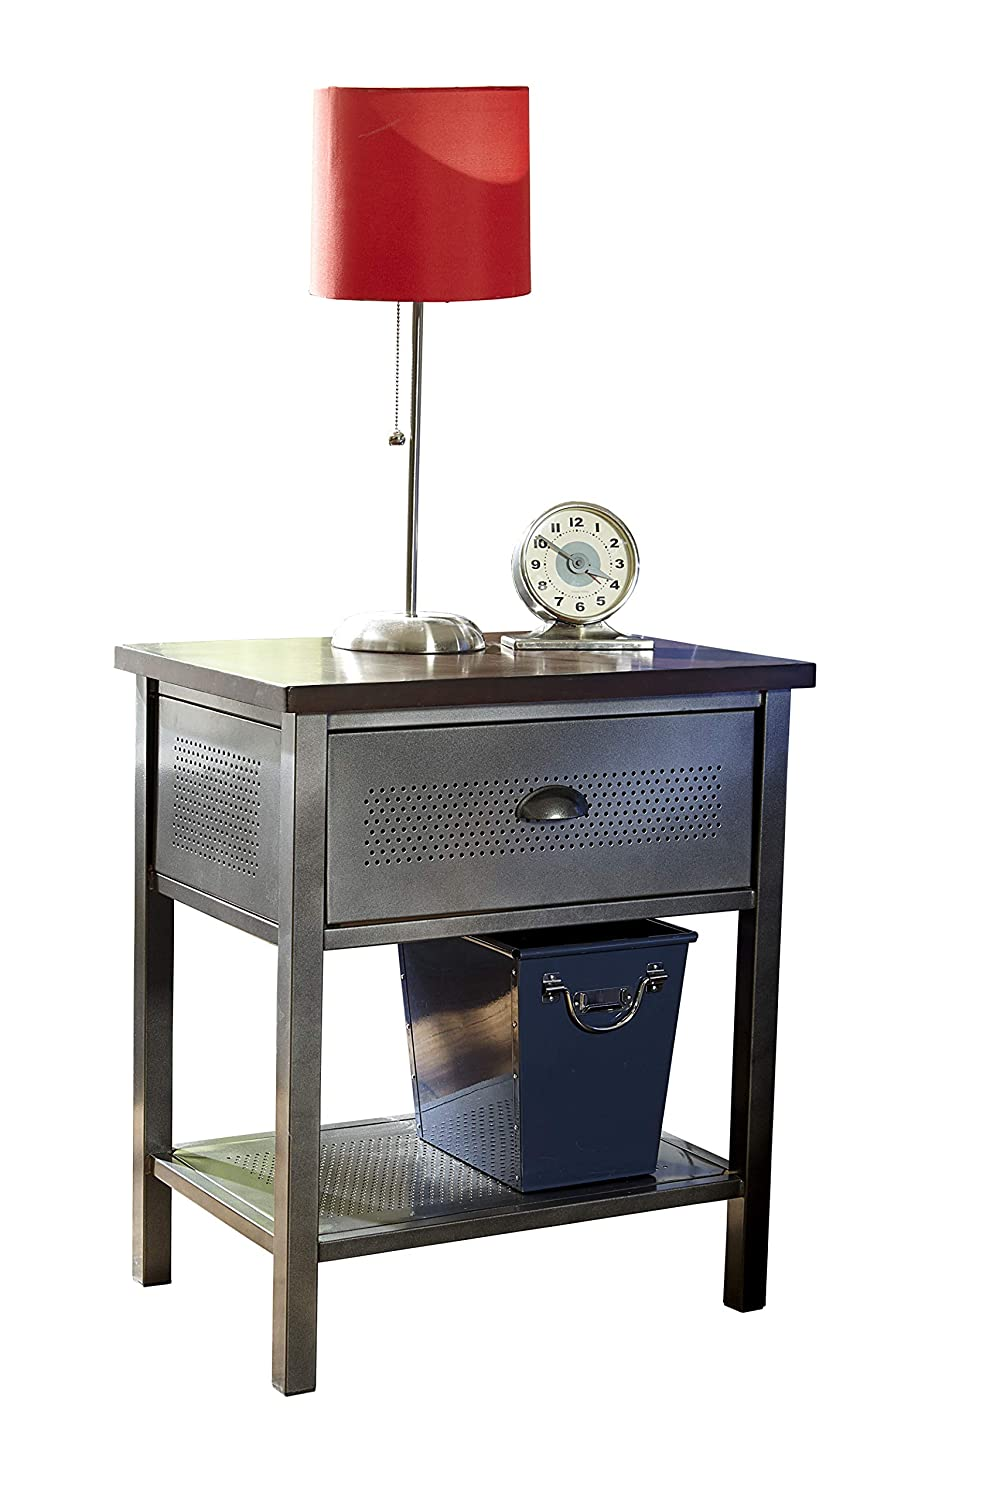 Hillsdale Furniture 1265-771R Urban Quarters, Nightstand, Black Steel and Antique Cherry Finished Metal